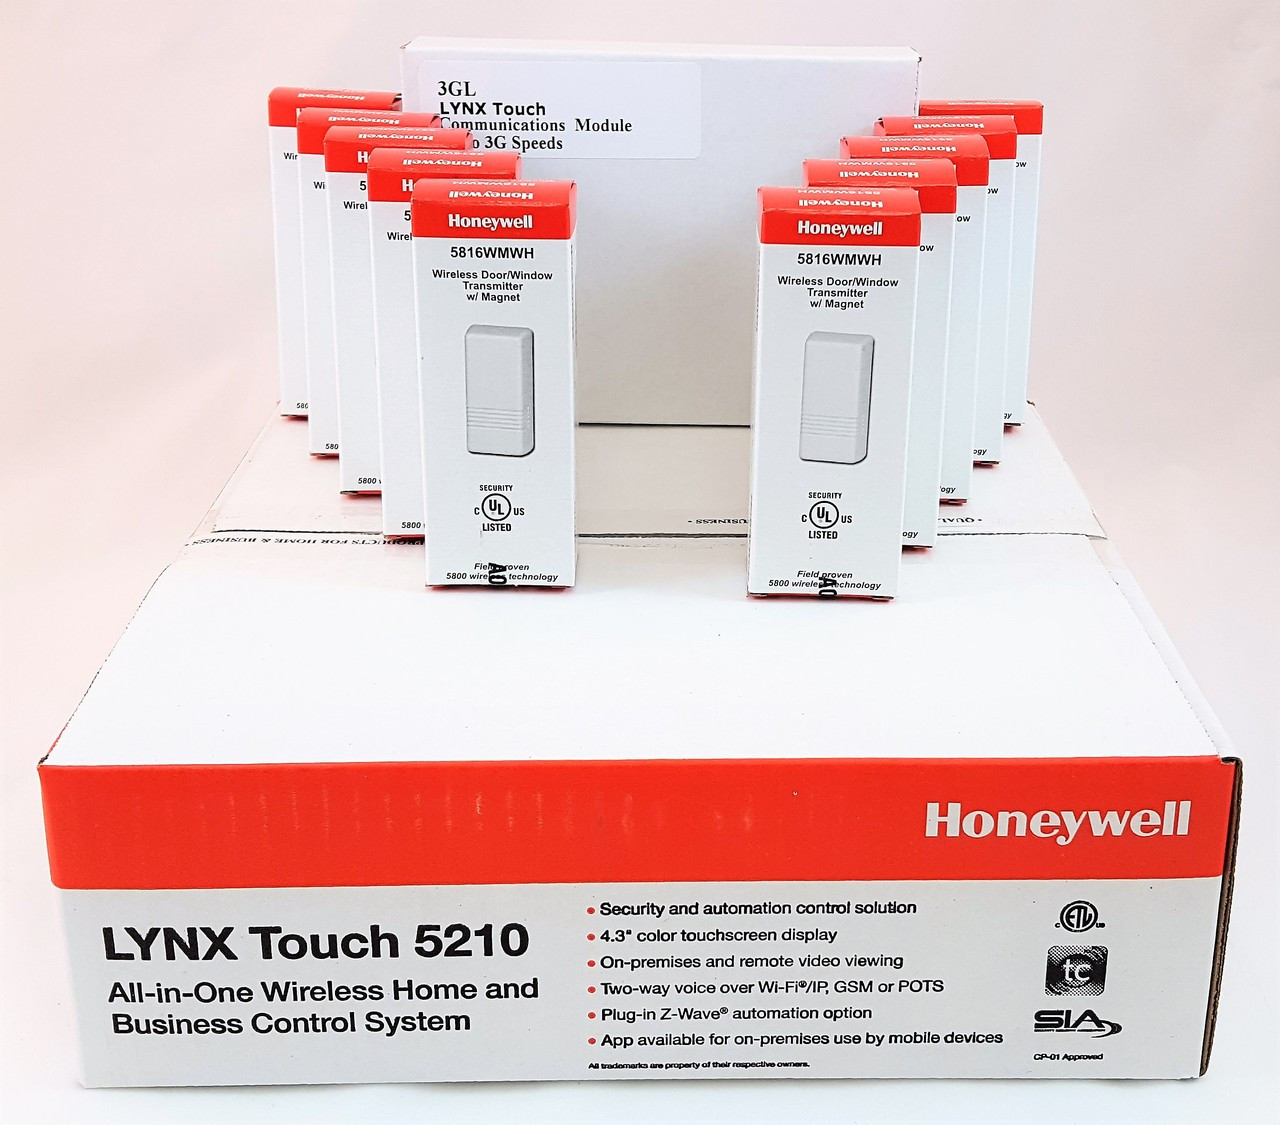 Honeywell Lynx Touch 5210 with (10) 5816WMWH and an LTE Communicator